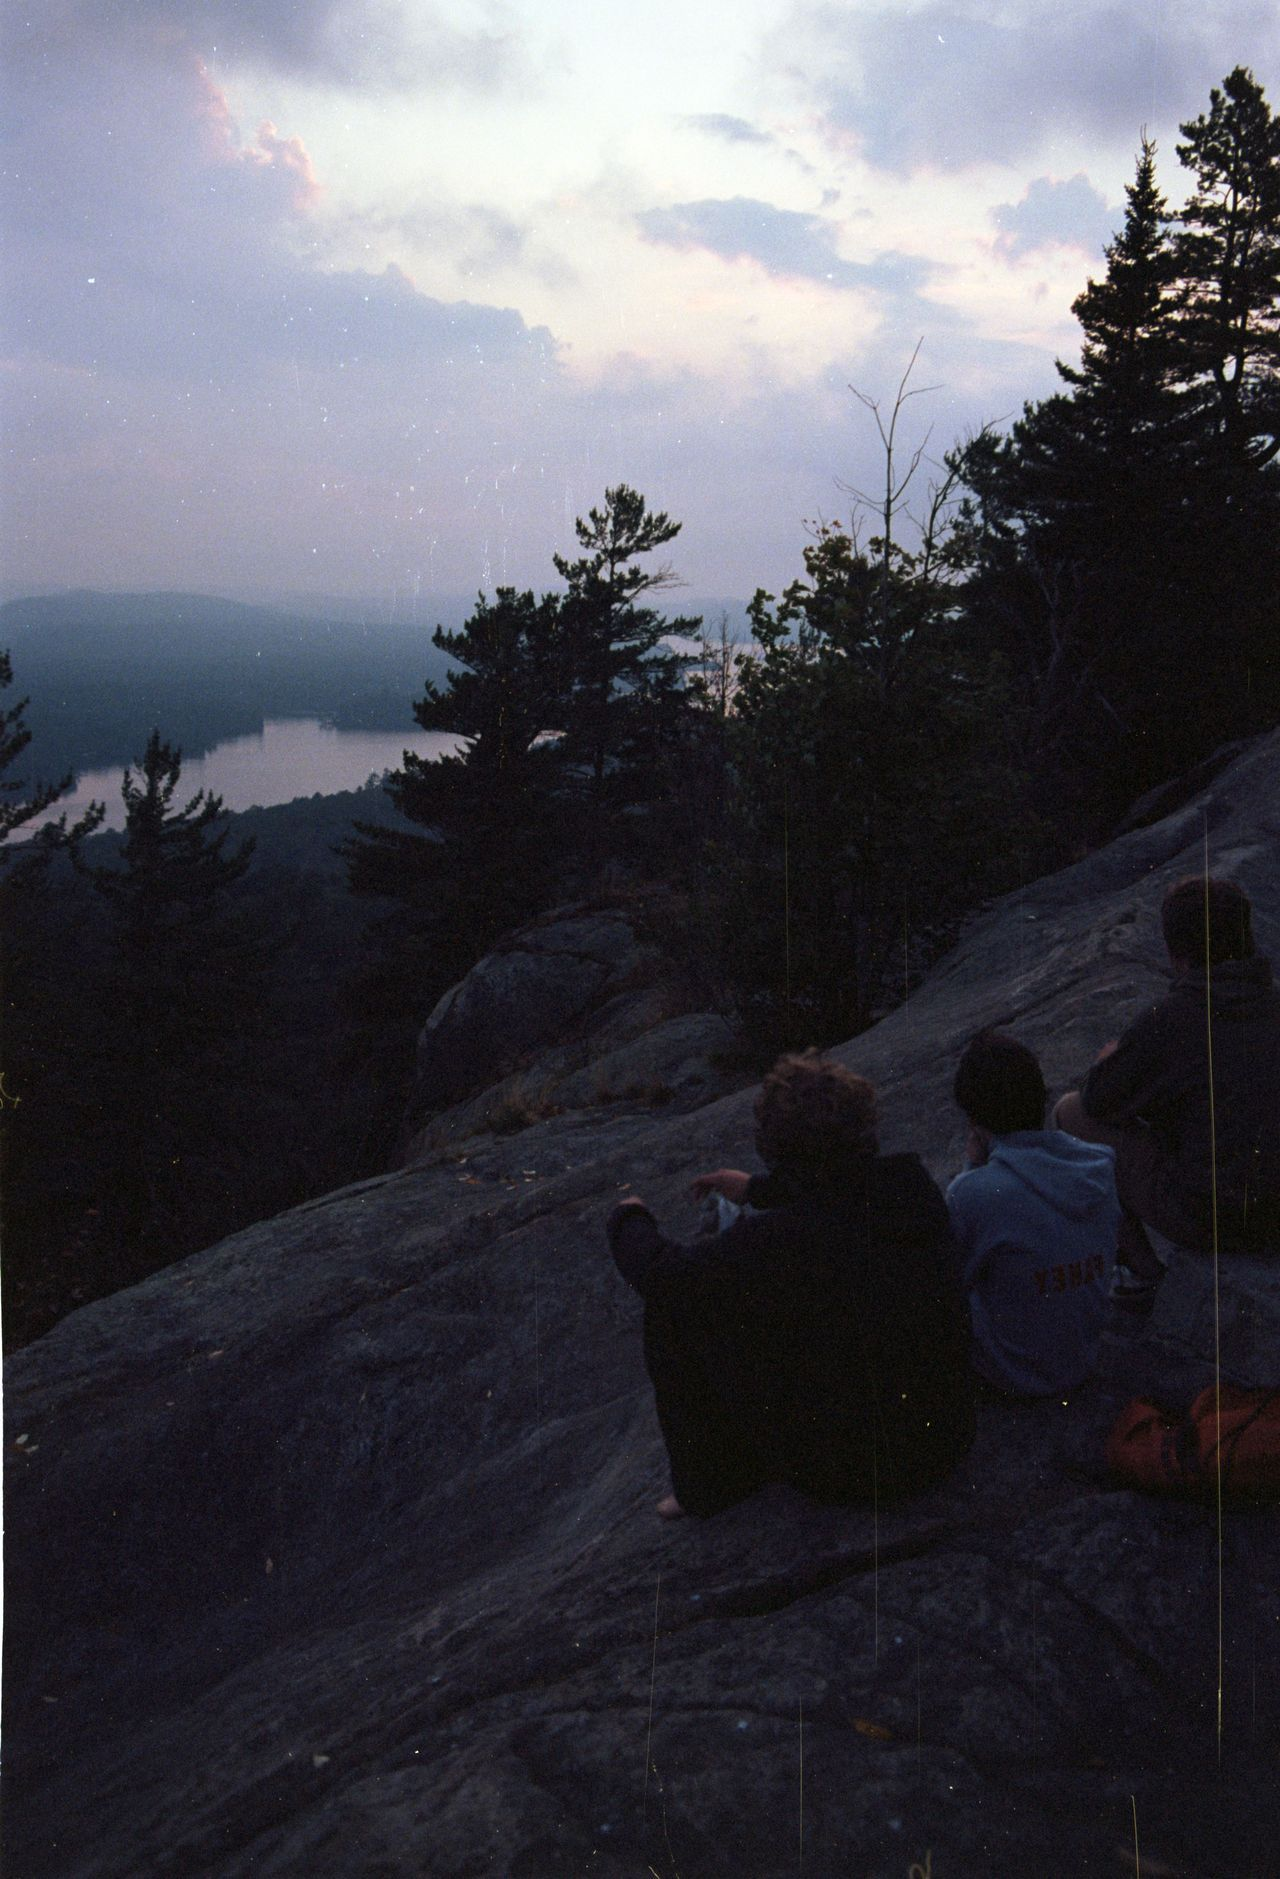 Another one from Bald mountain.  I am really glad I found my negatives from this trip- I had enlargements made and lost track of them. This photo is of 3 guys we ran into up on the mountain and I figured that taking a photo of them would be good just to help remember the whole experience of it all a bit better for the years to come.  C.F.B.